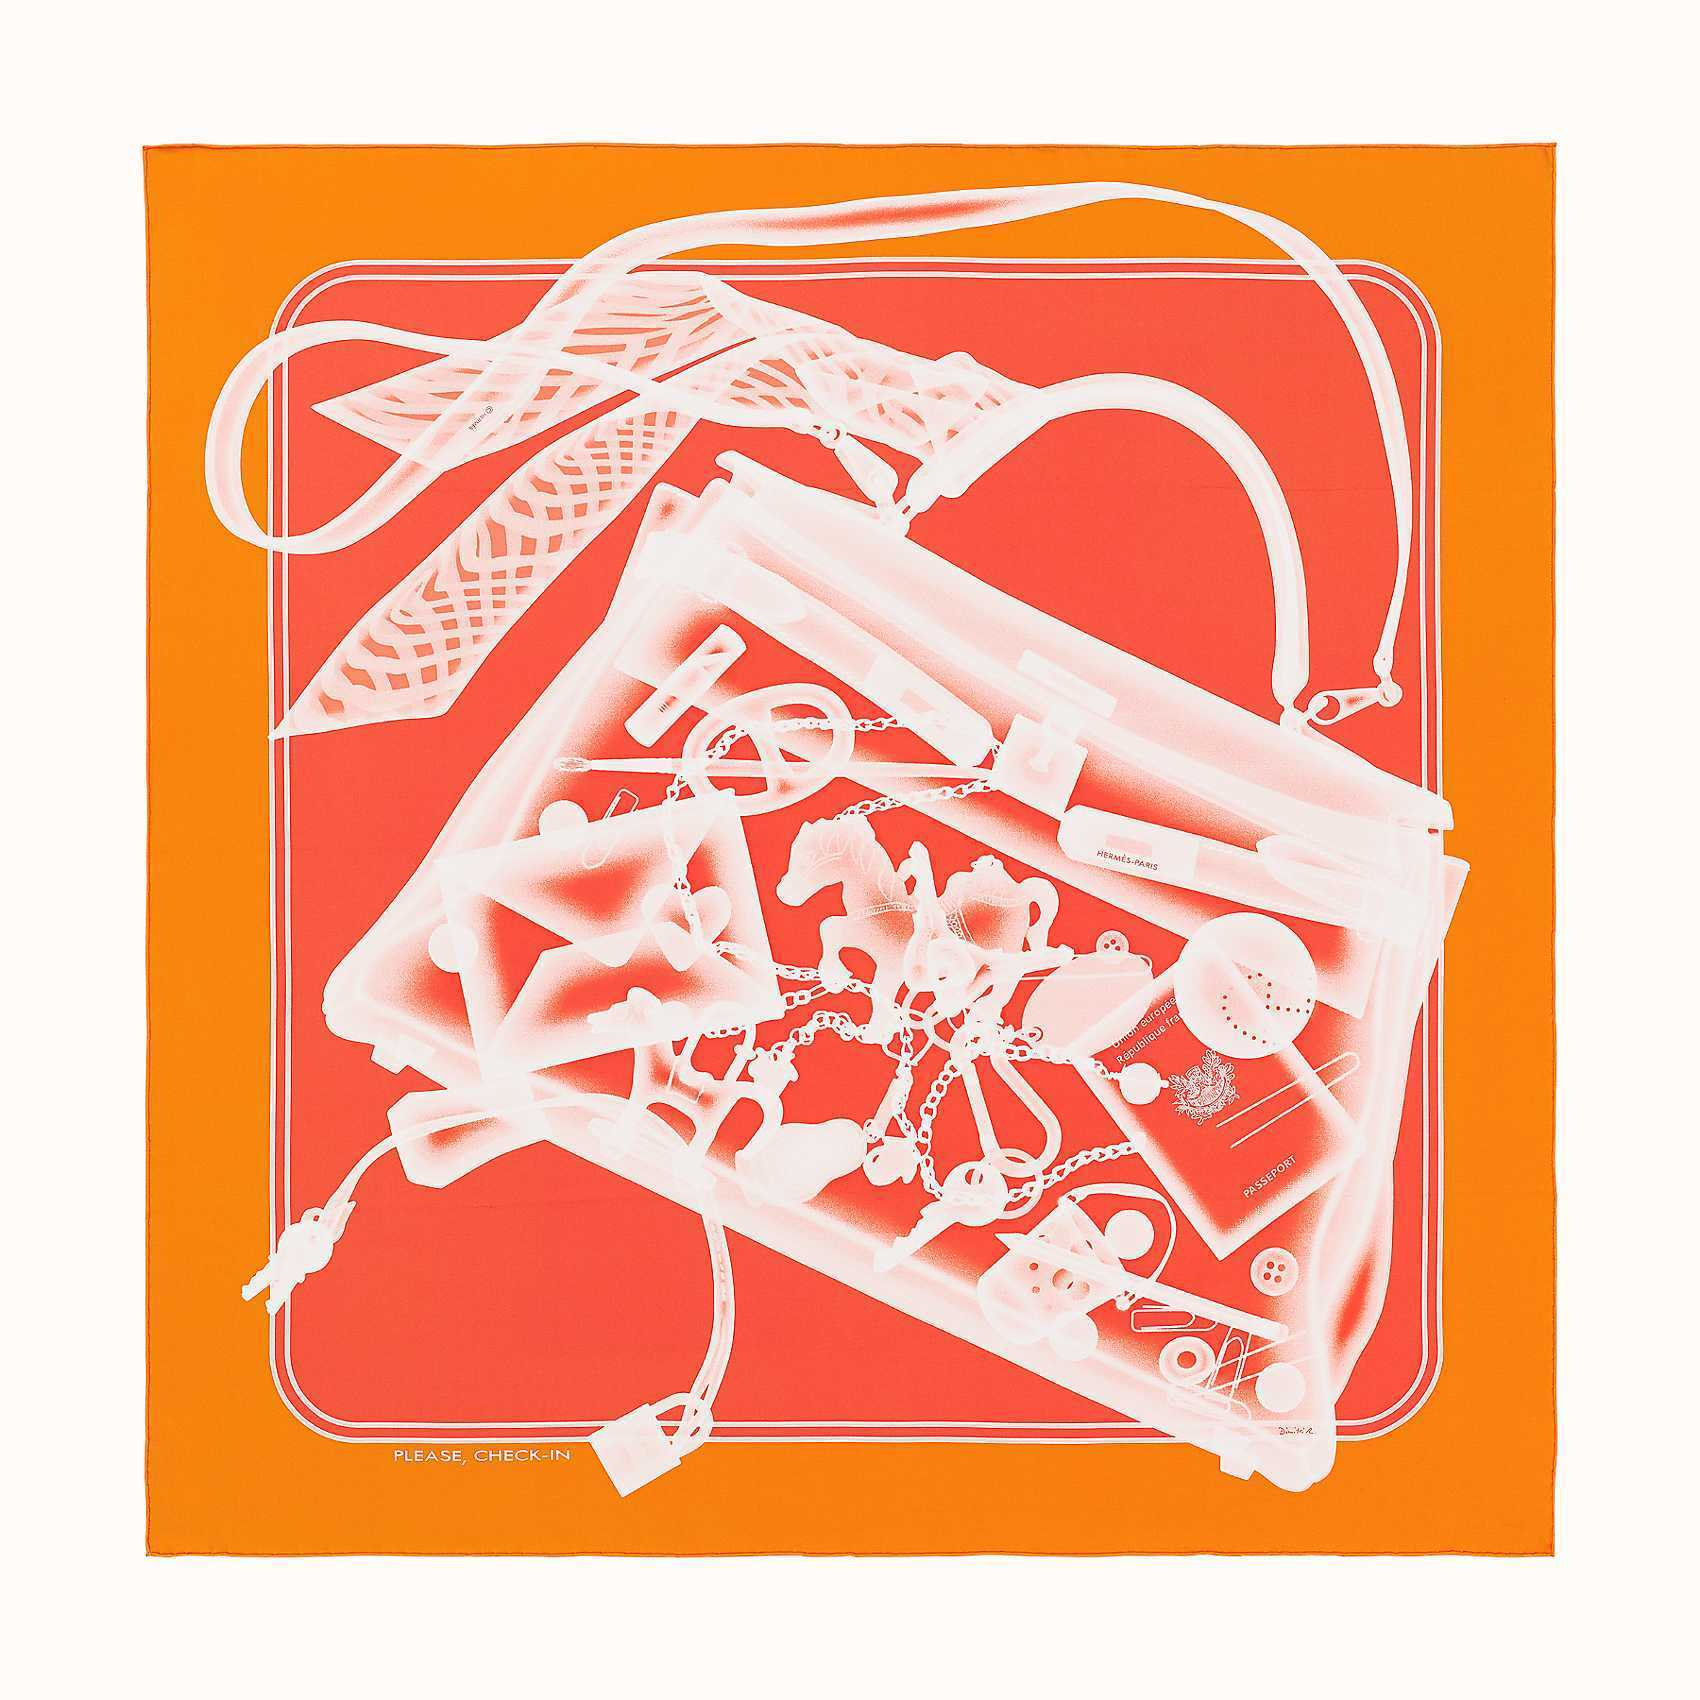 HERMES Please, Check-In Scarf 90